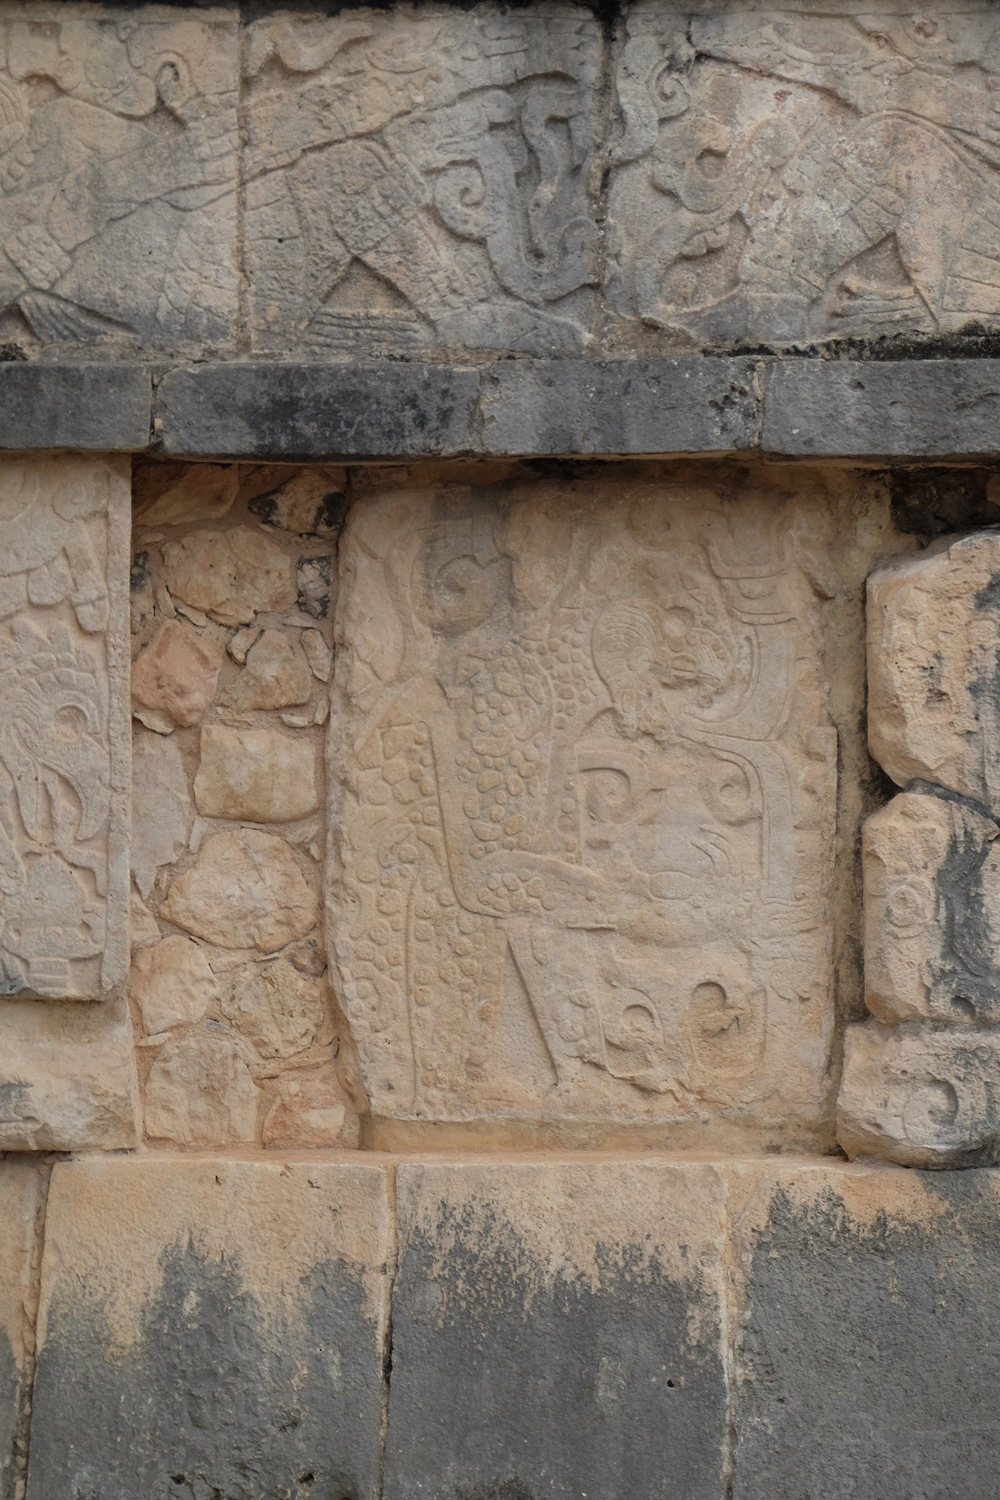 Carving from Chichen Itza